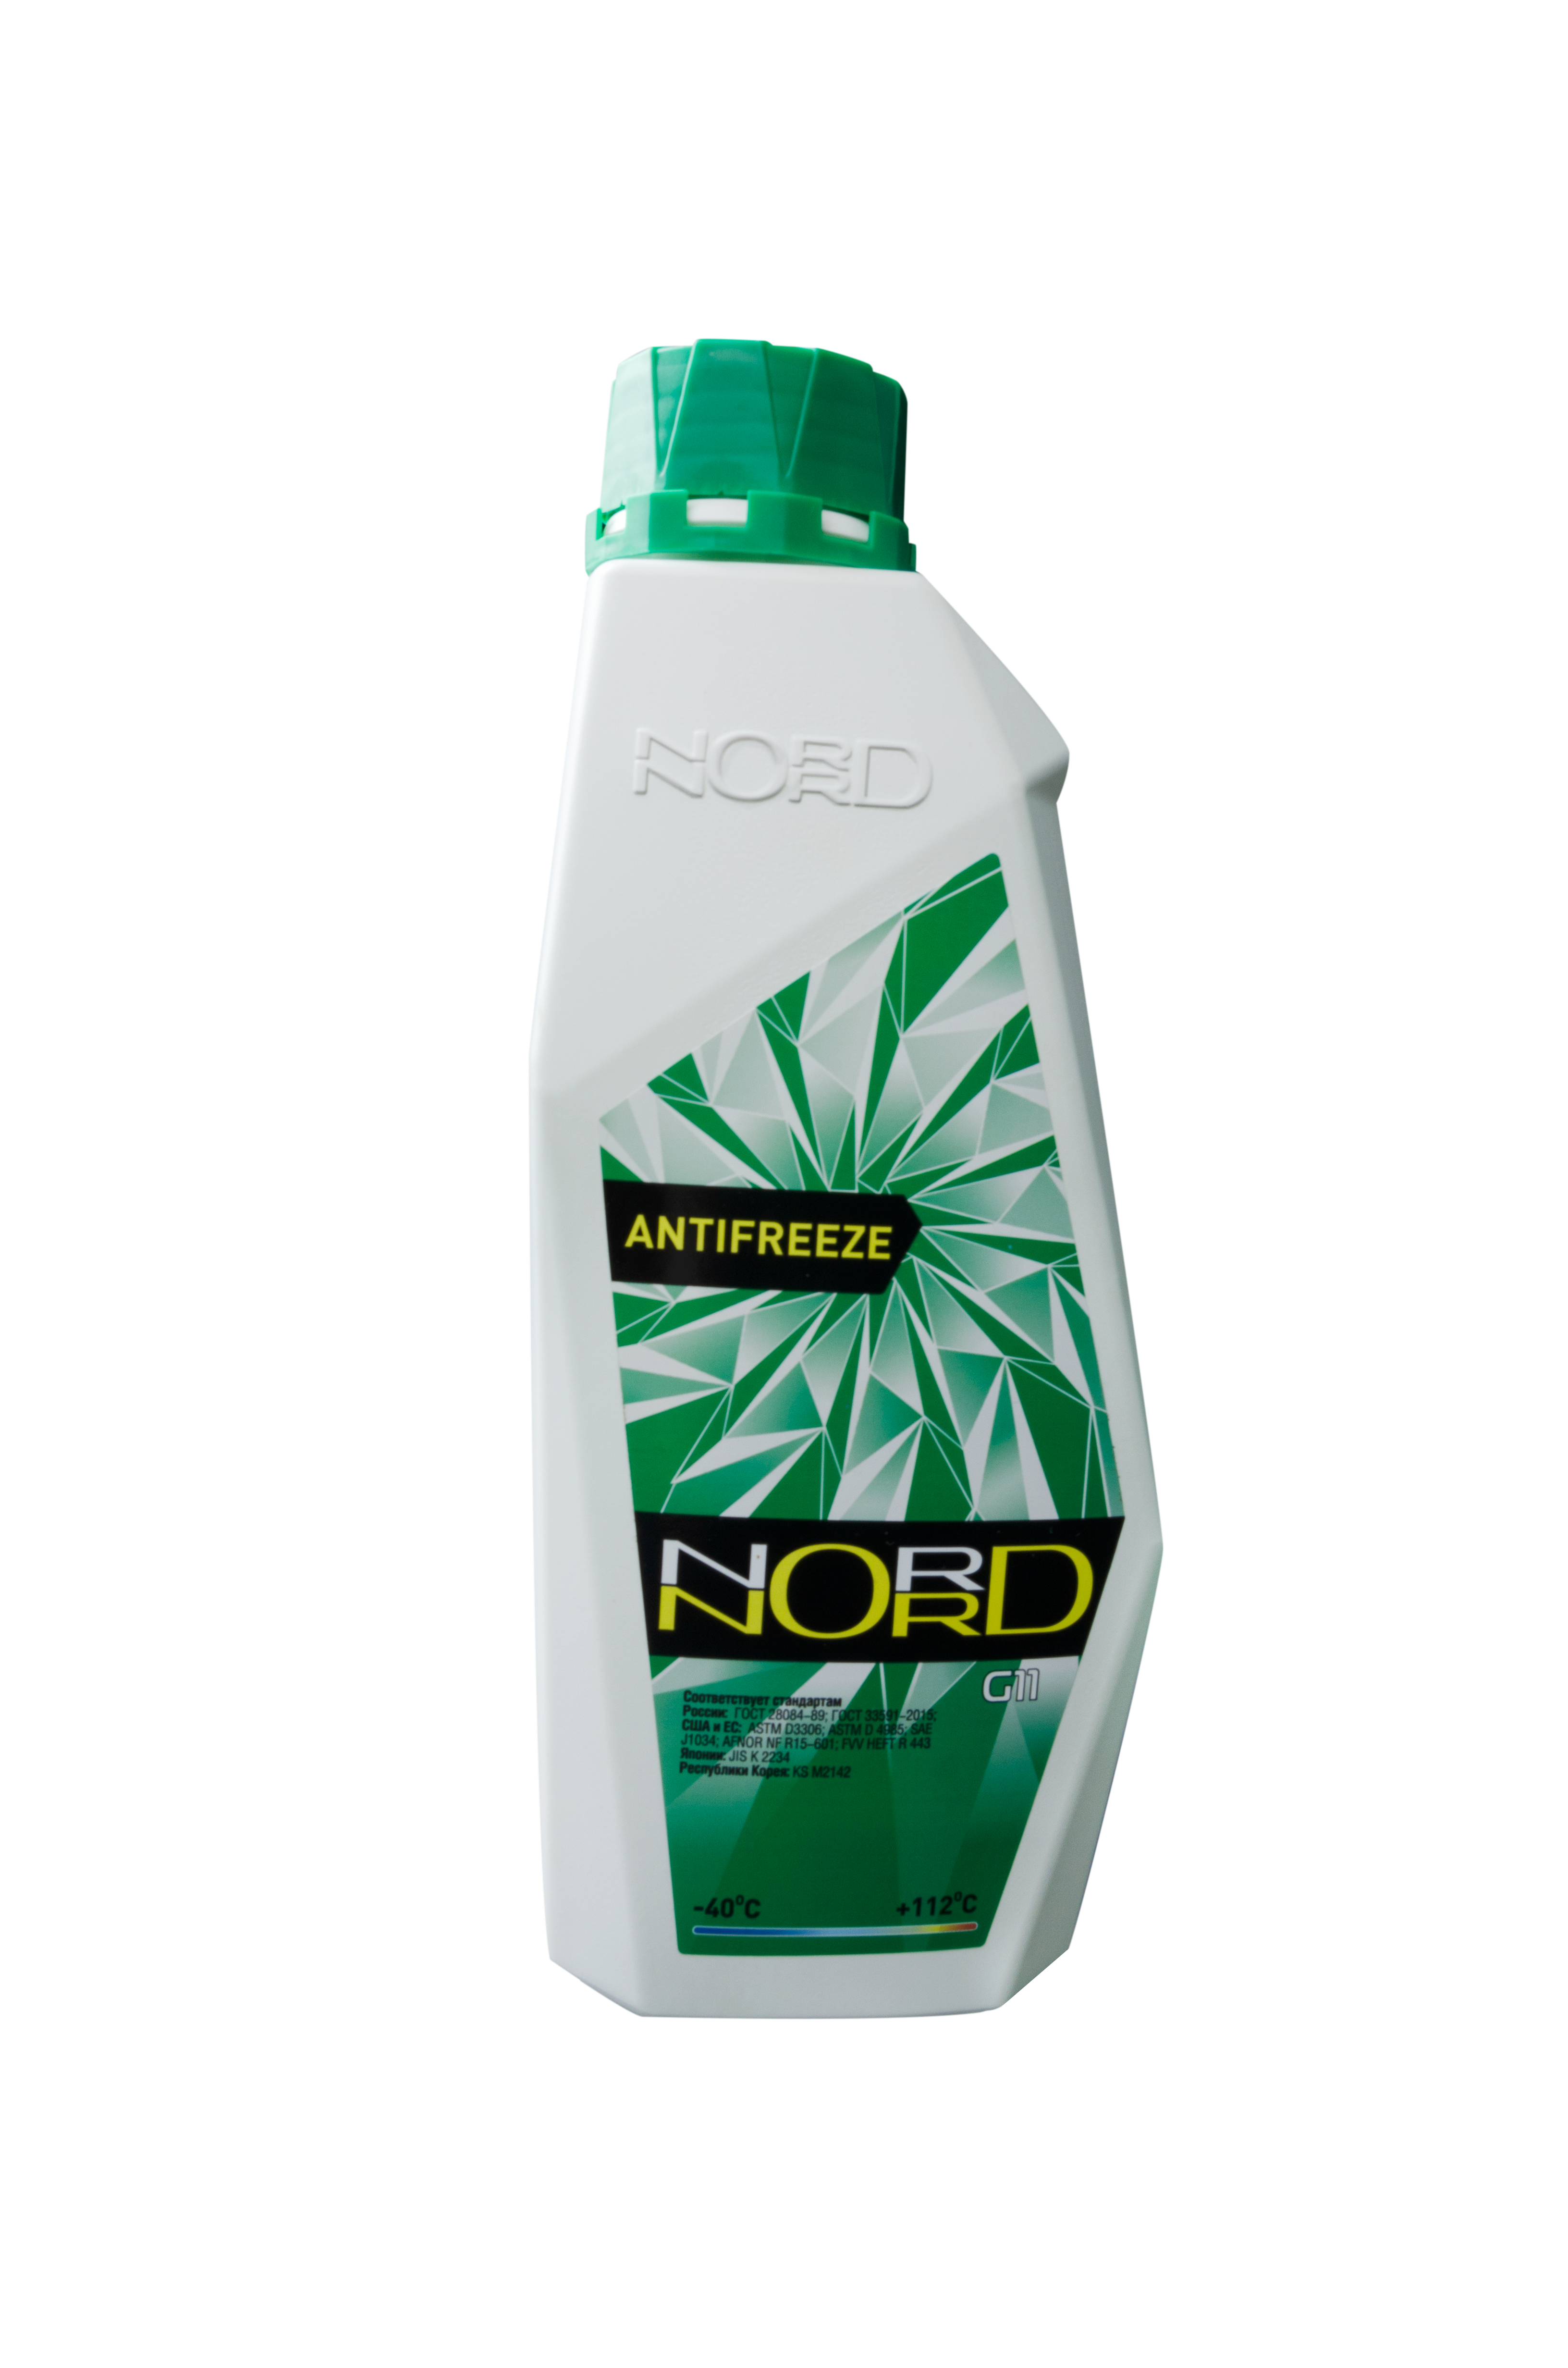 nord NG20263 Антифриз NORD High Quality Antifreeze готовый -40C зеленый 1 кг